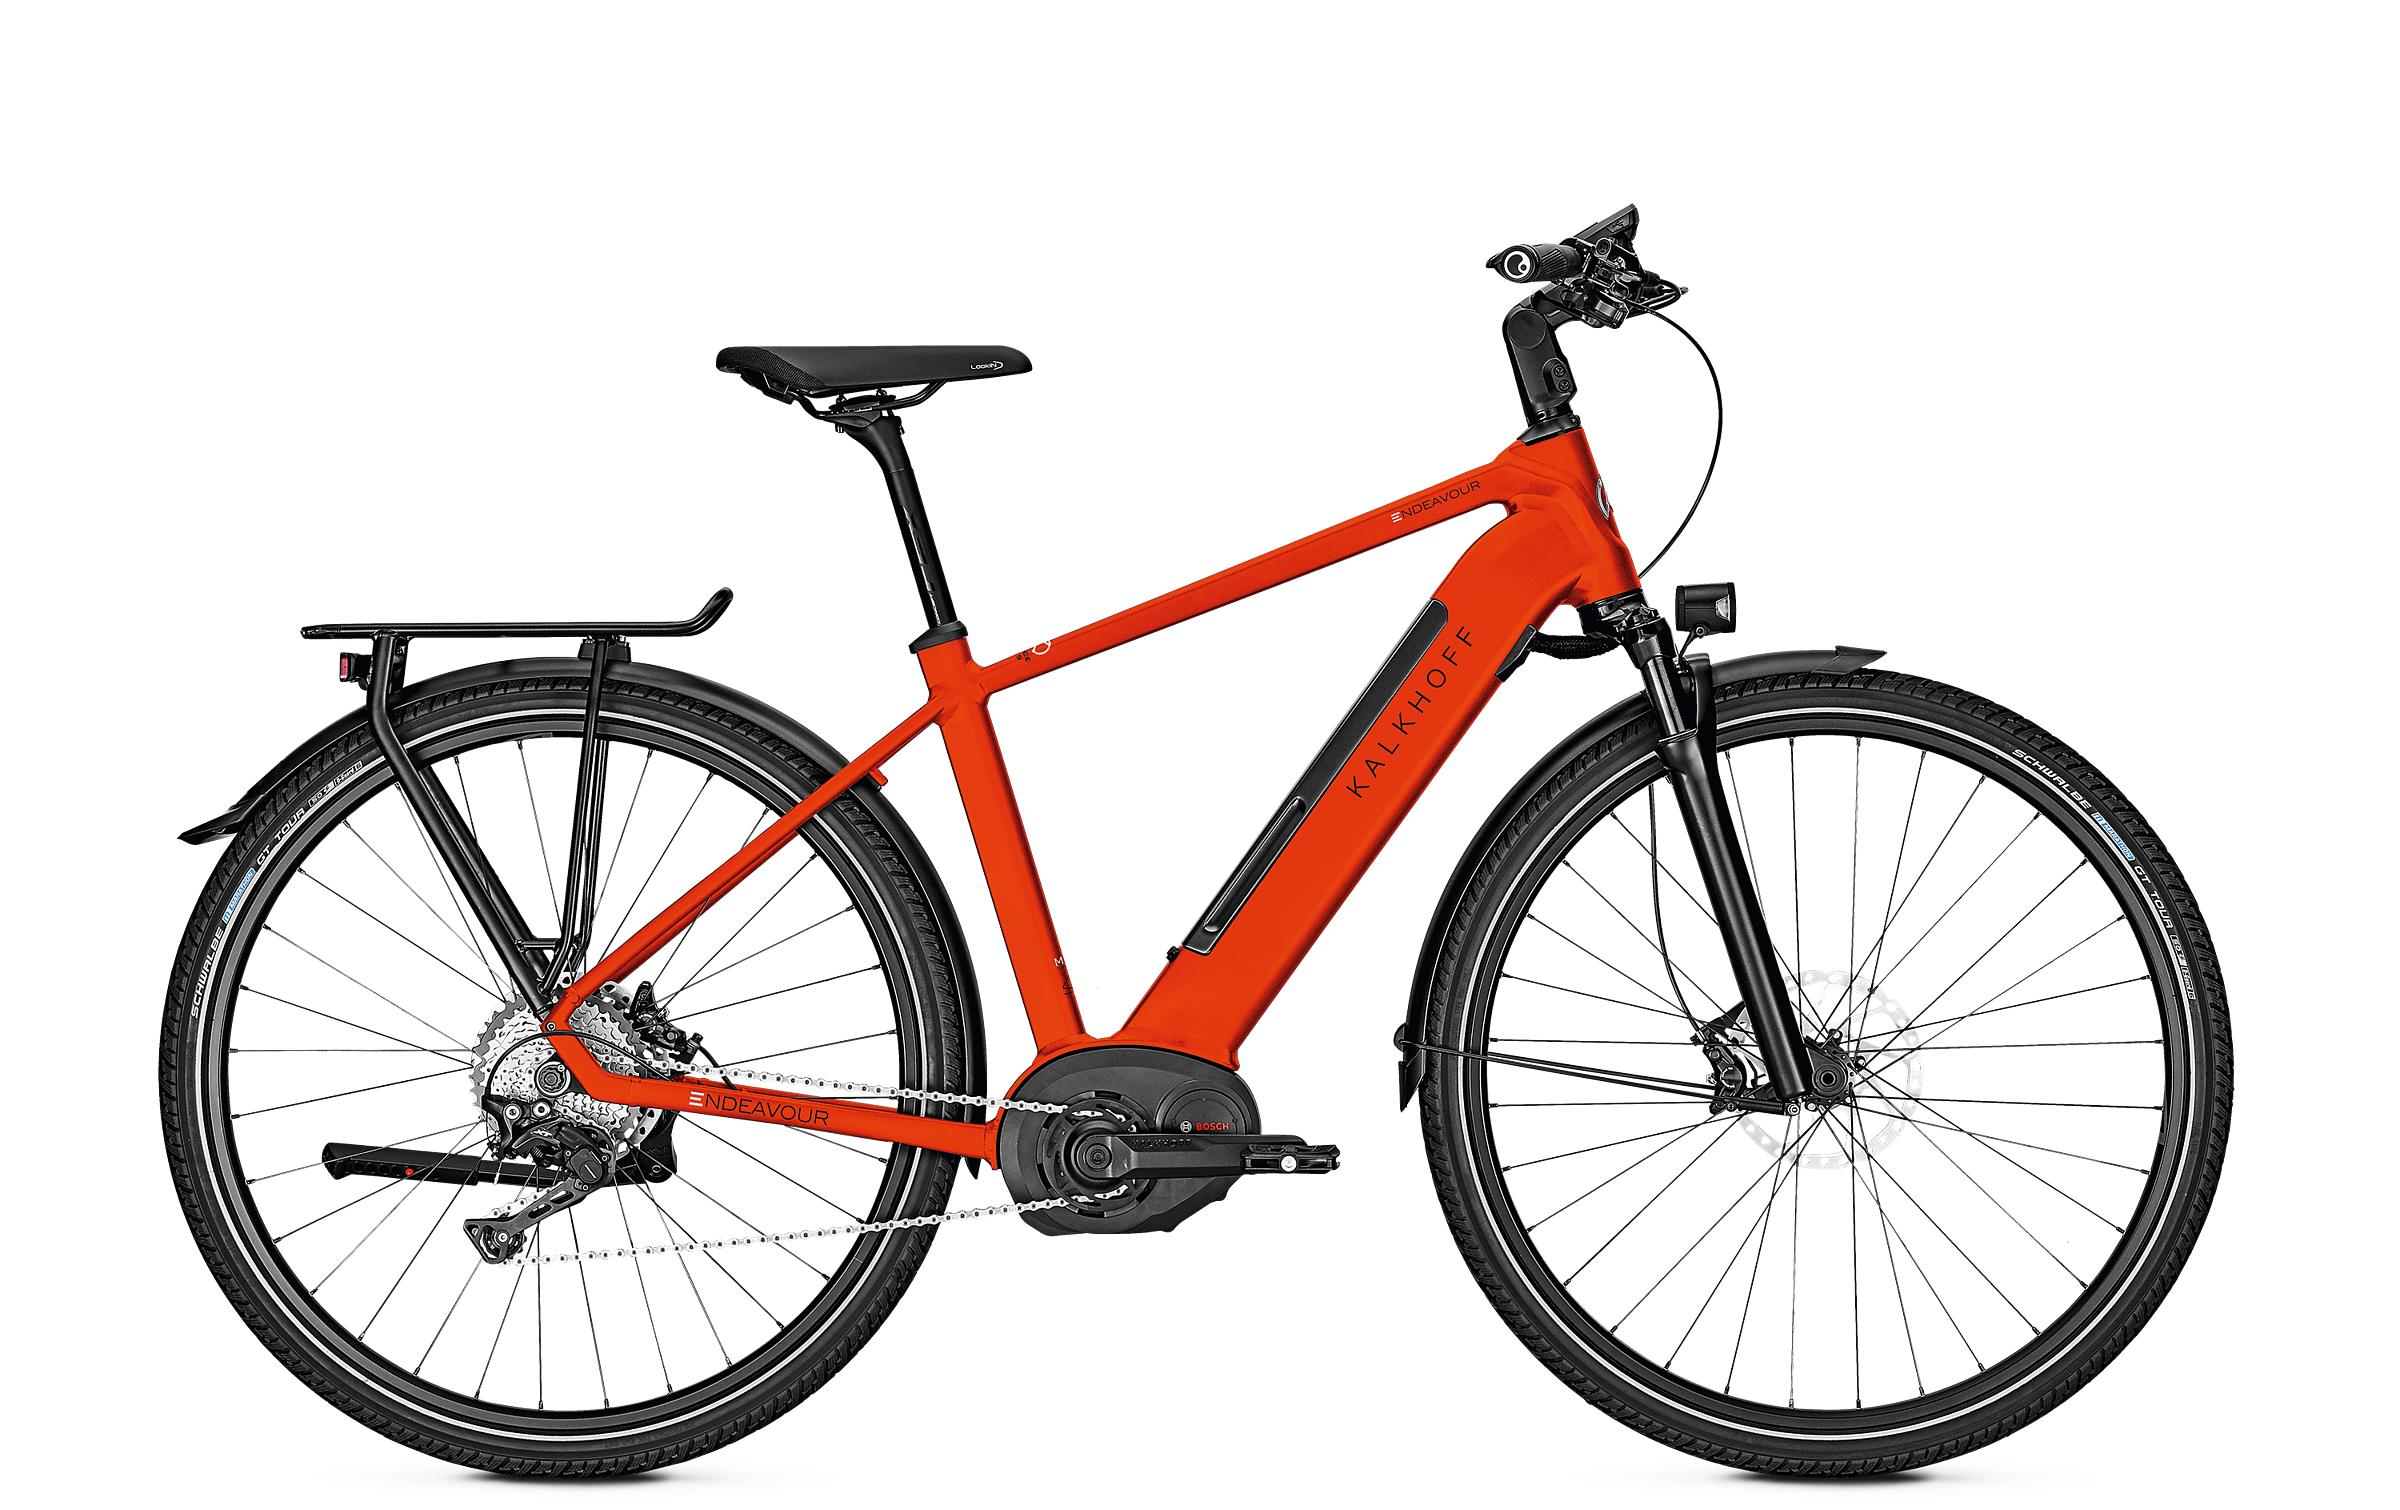 Kalkhoff ENDEAVOUR 5.B EXCITE firered glossy 2019 - 28 Diamant 482 Wh -  53